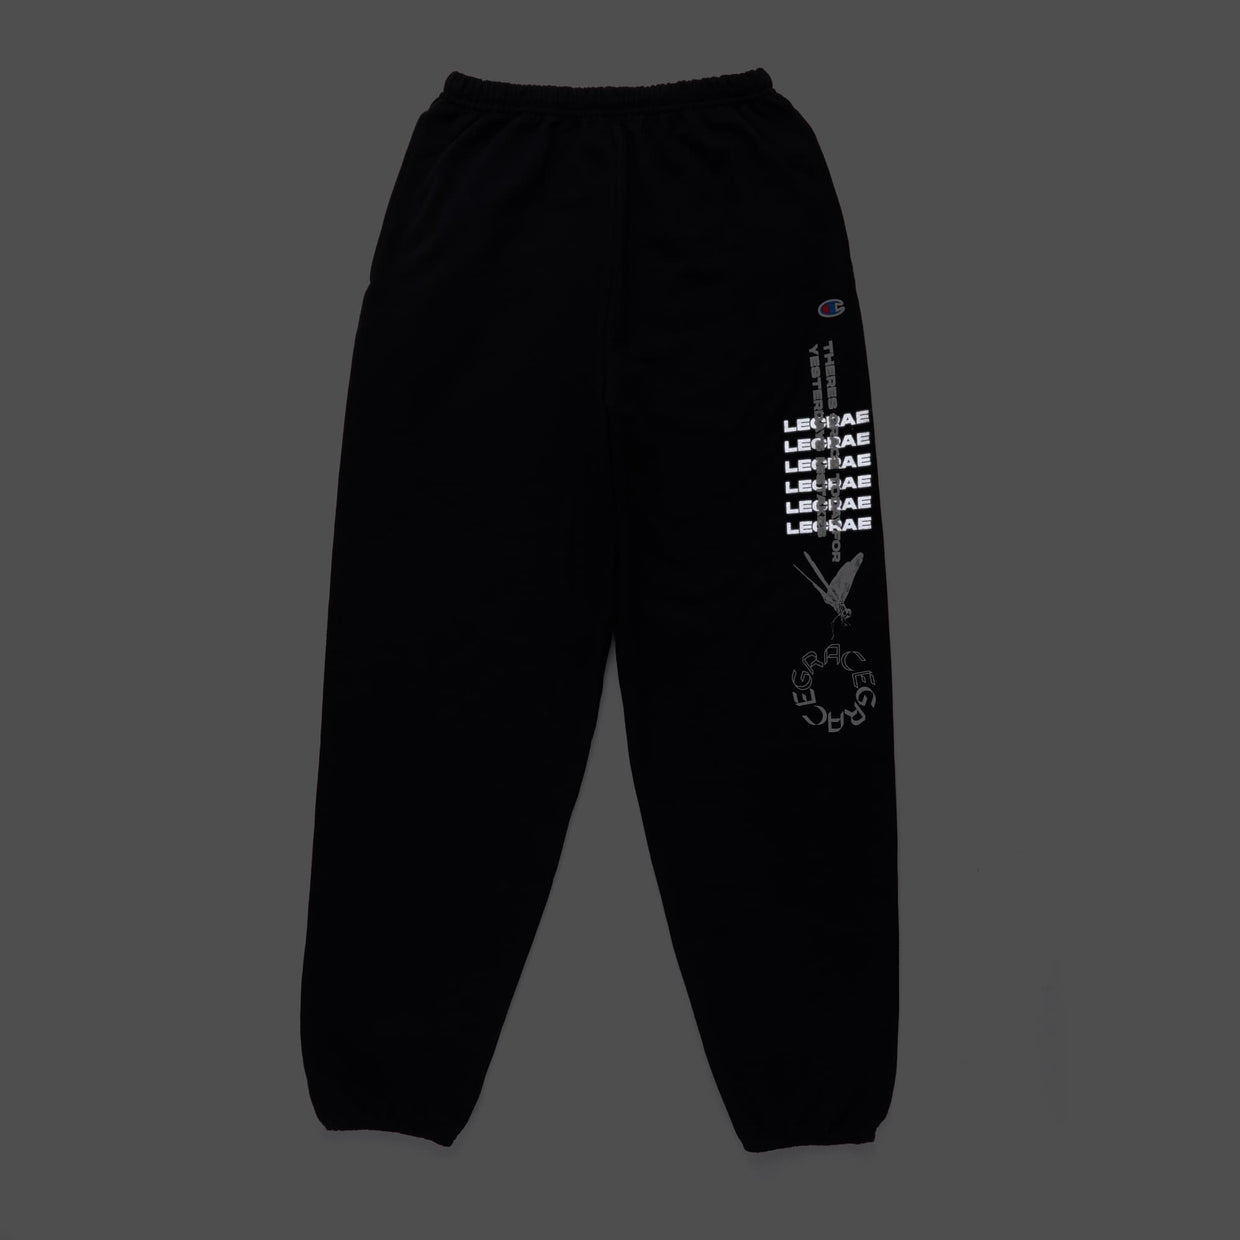 Lecrae 'Grace Today' Sweatpants